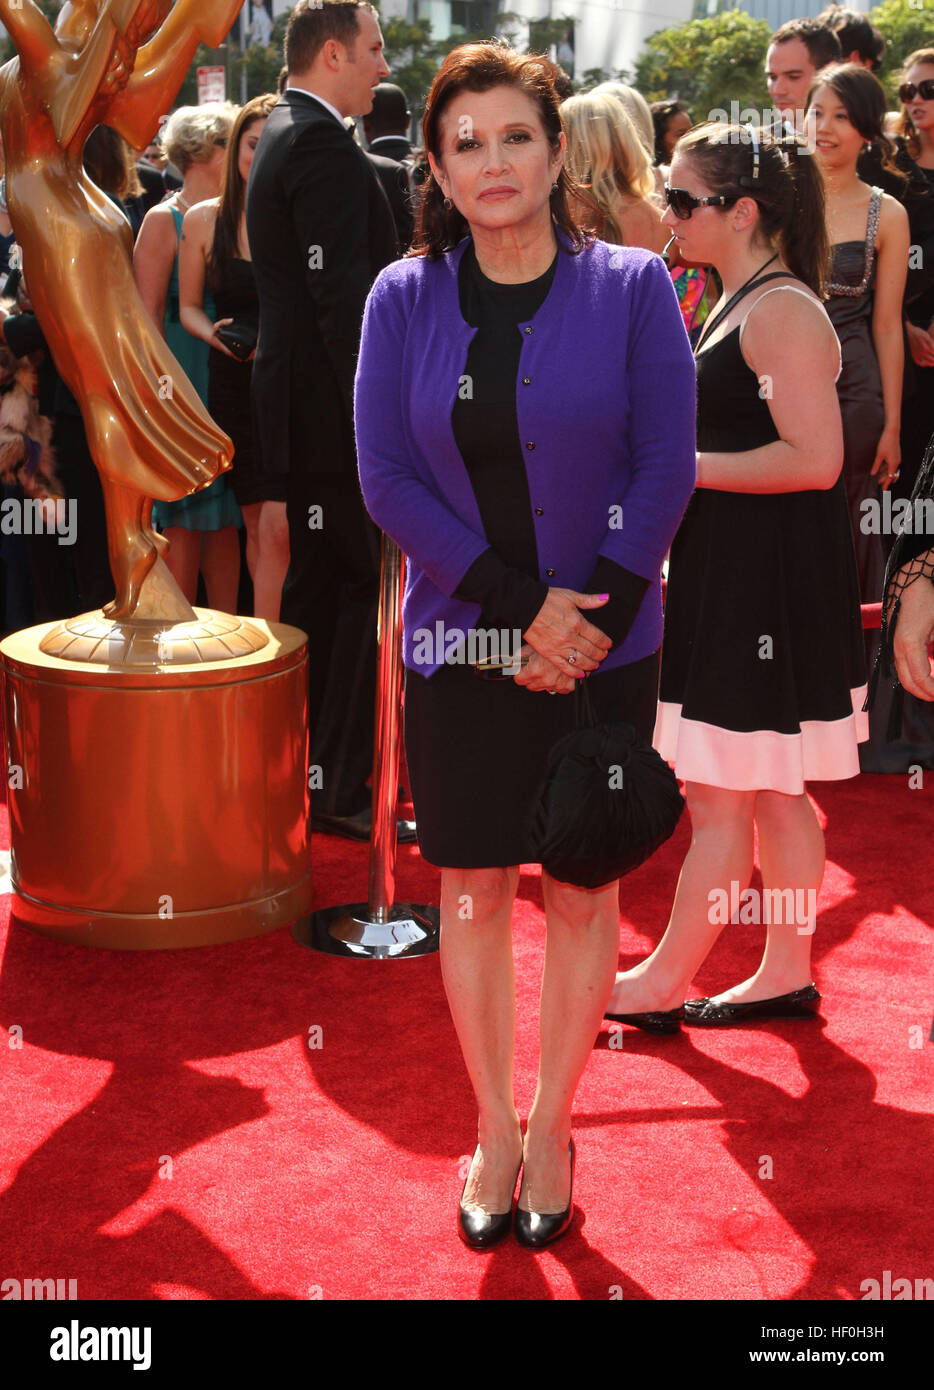 FILE PIC: Los Angeles, CA, USA. 10th Sep, 2011. 27 December 2016 - Carrie Fisher, the iconic actress who portrayed - Stock Image